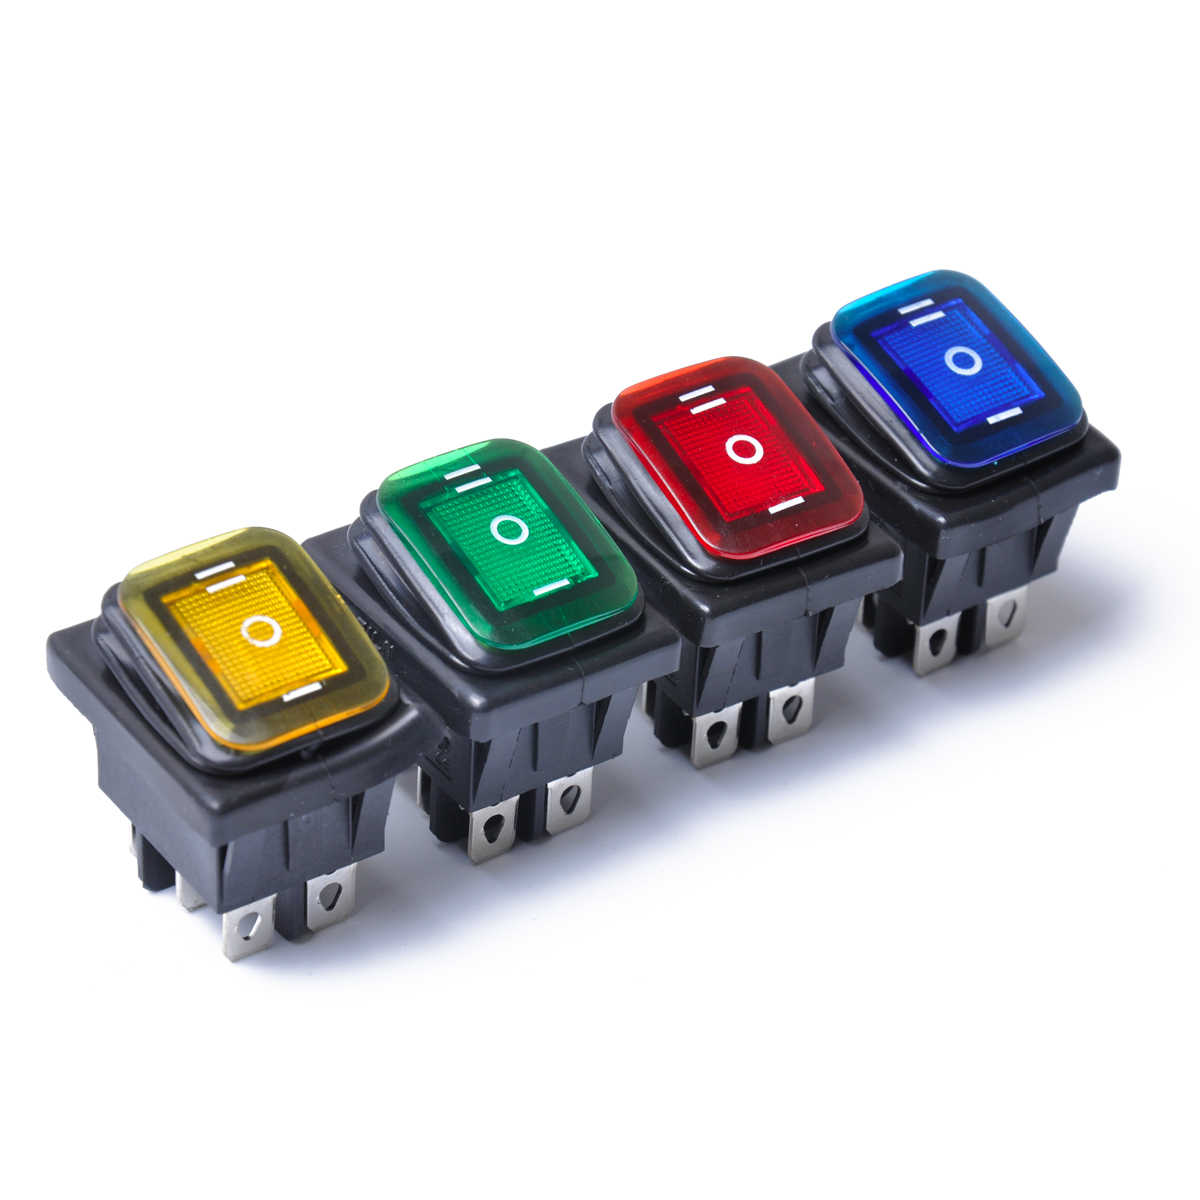 Rocker Toggle Switch On-Off-On 6 Pins 12V DC Car Boat Automobiles Waterproof LED Latching Switches